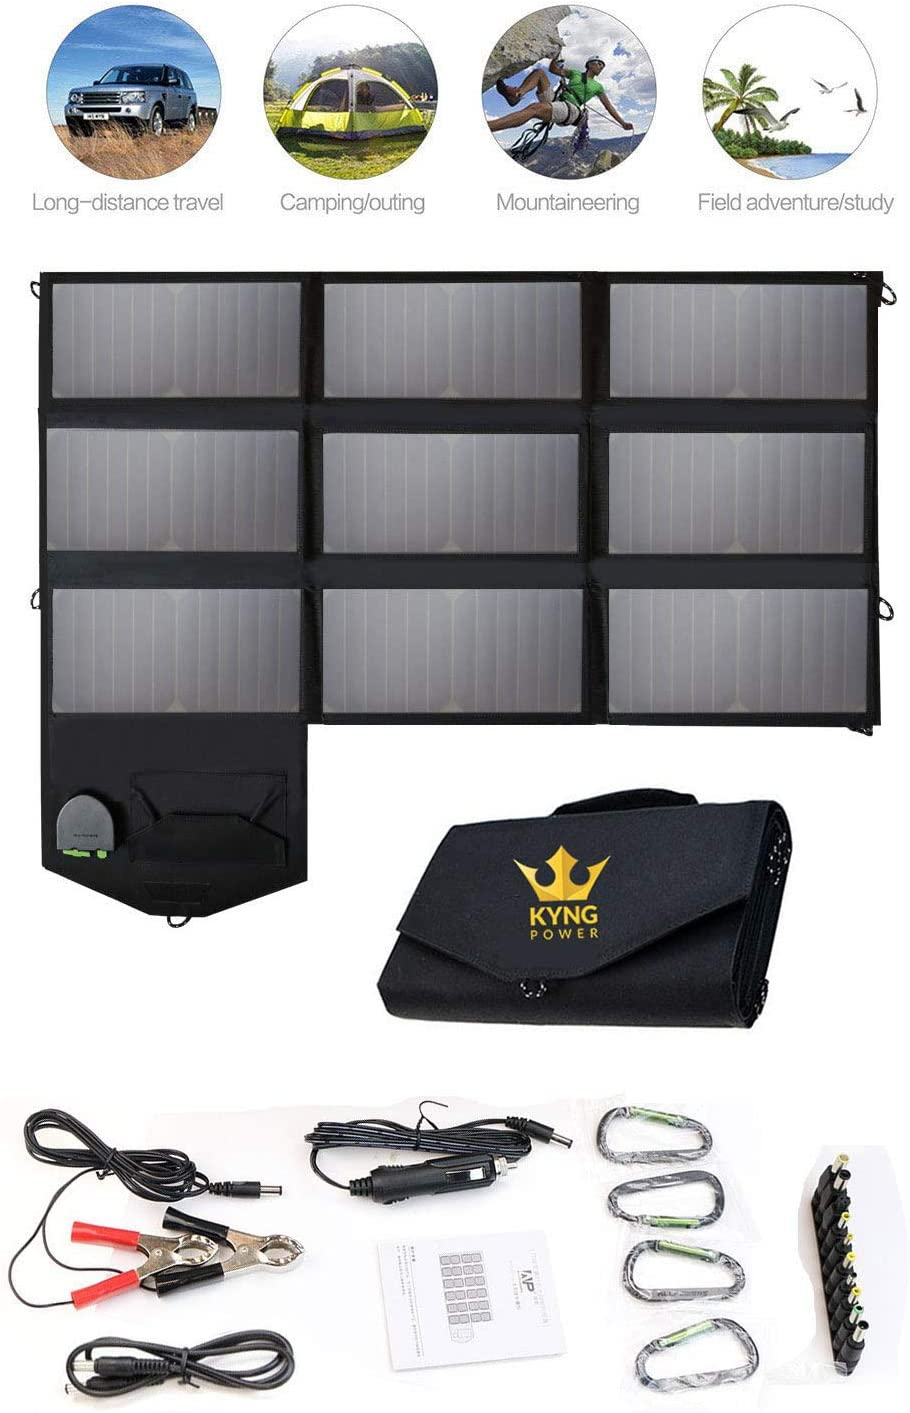 Kyng Power Foldable Solar Panel Charger Portable 60w Charger Solar Generator Panel Power Station Use with any Brand 18V Charging 5V USB 12V car charging Camping, Emergency, Laptop, iPhone, Tablet, etc